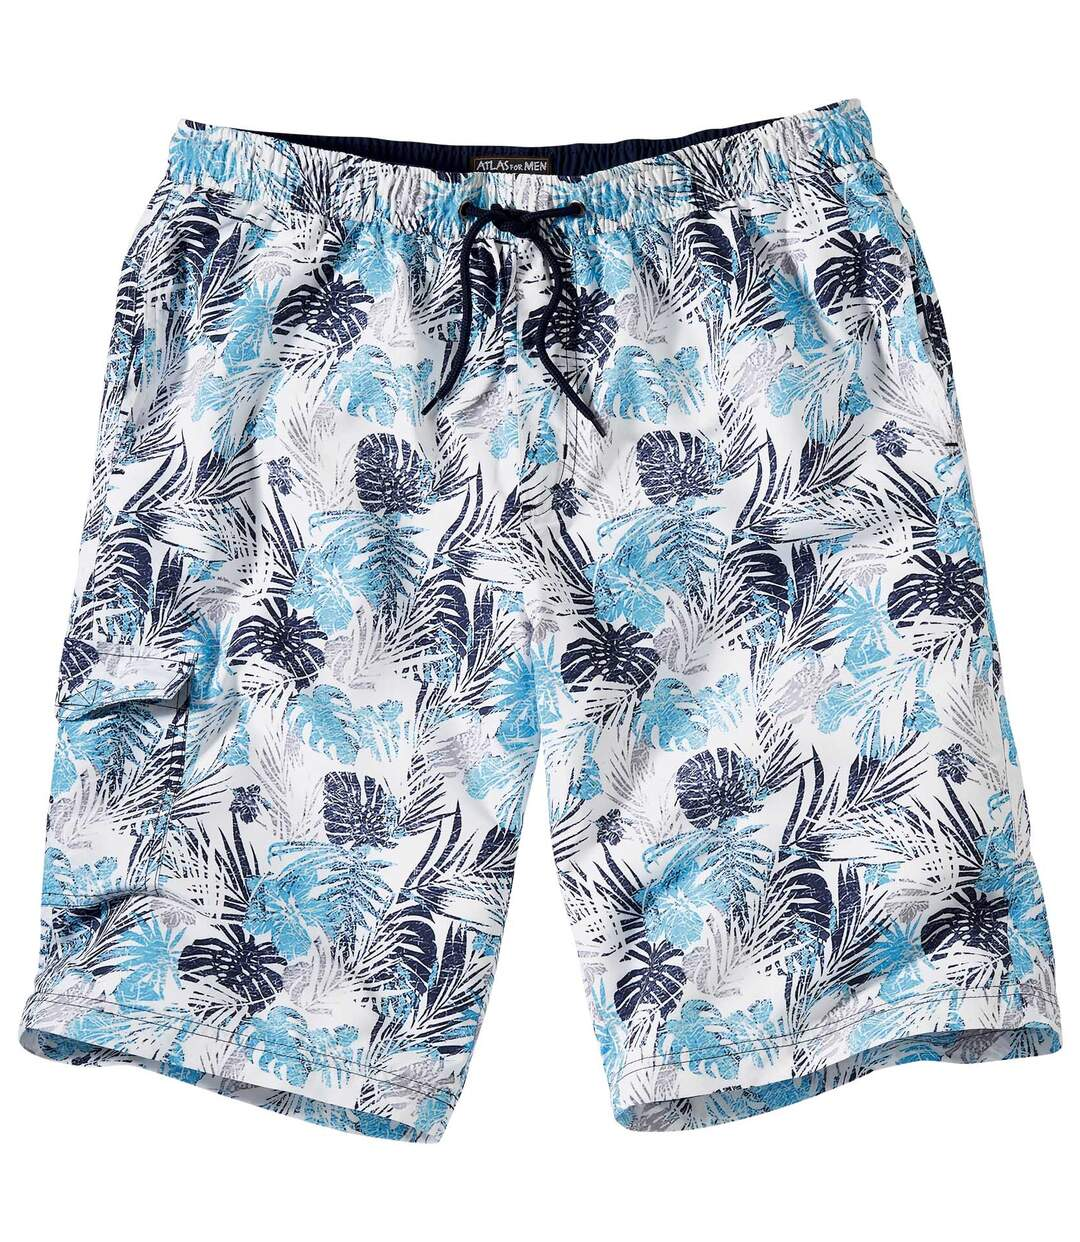 Bermuda-Badehose Tropical Spirit